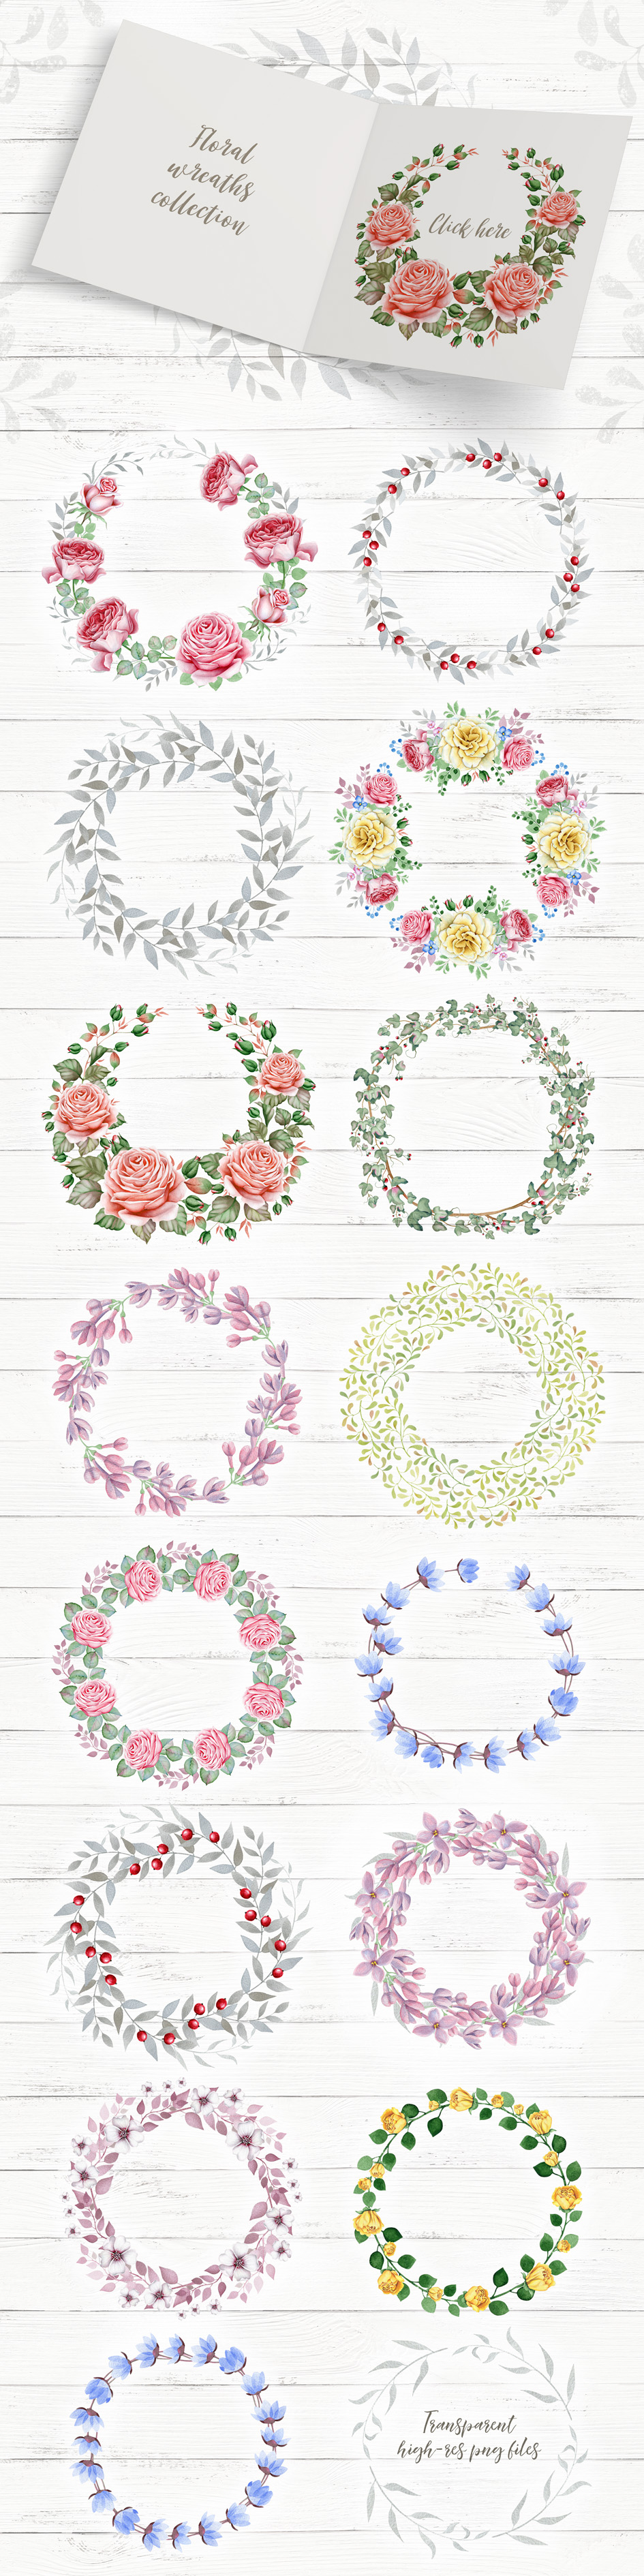 Wreaths and Bouquets collection V.3 example image 7